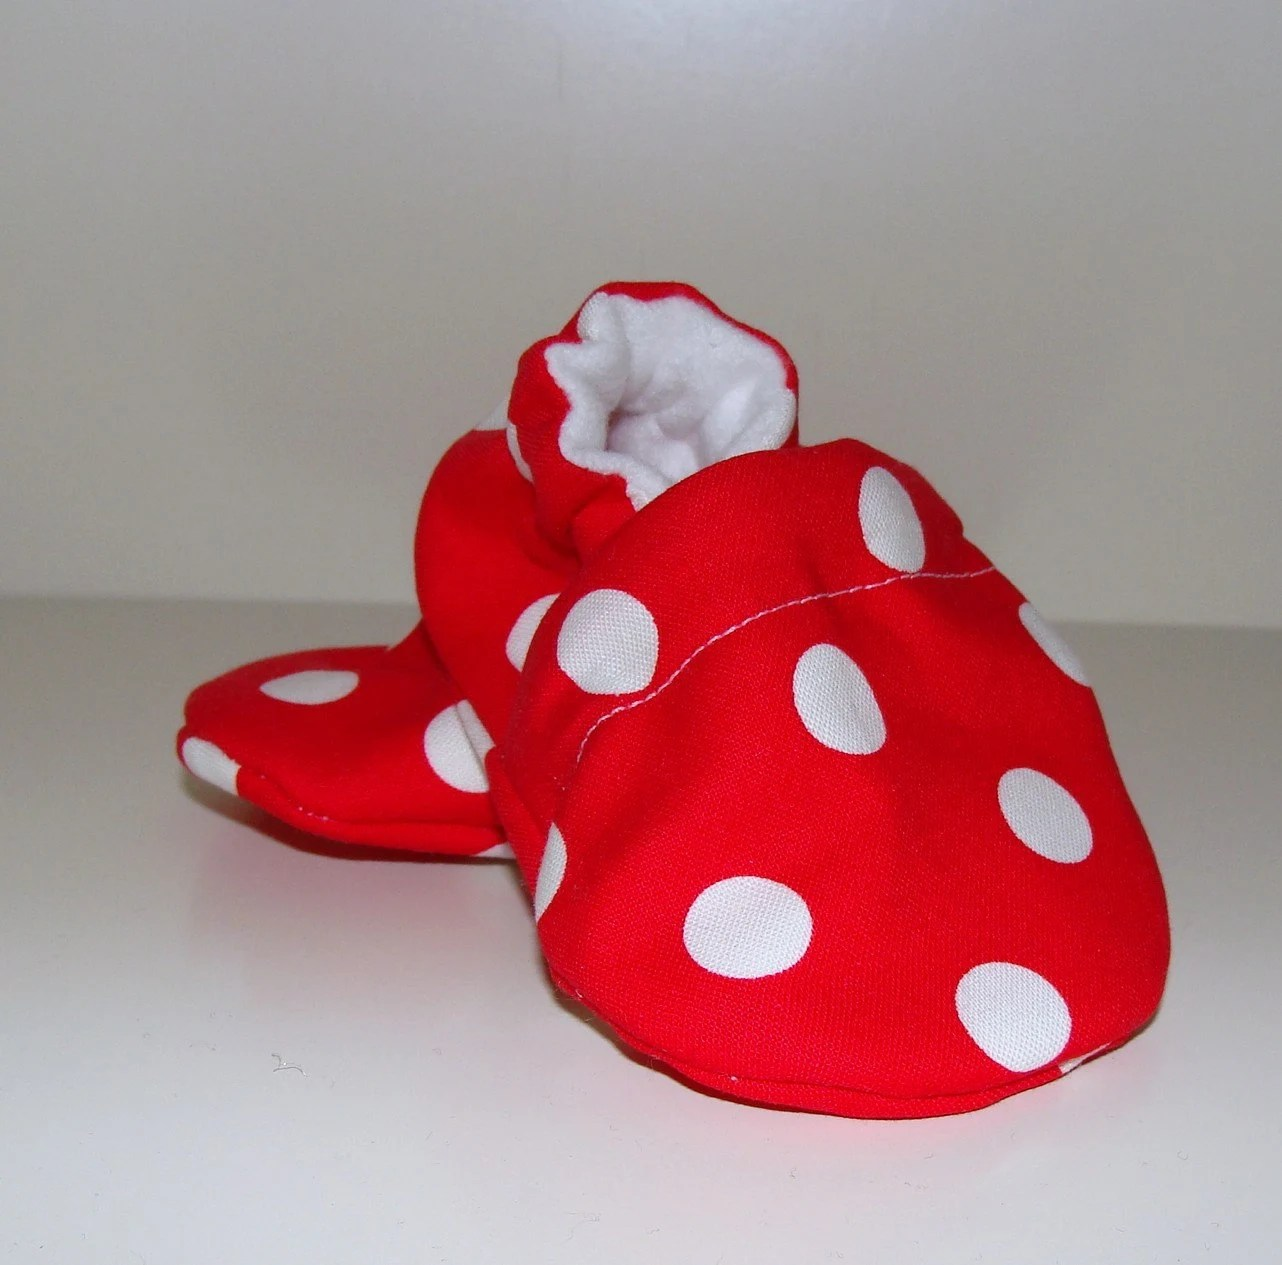 Minnie or Mickey Mouse Shoes in Red Polka Dots for a 0-6 month old.  Free Shipping.